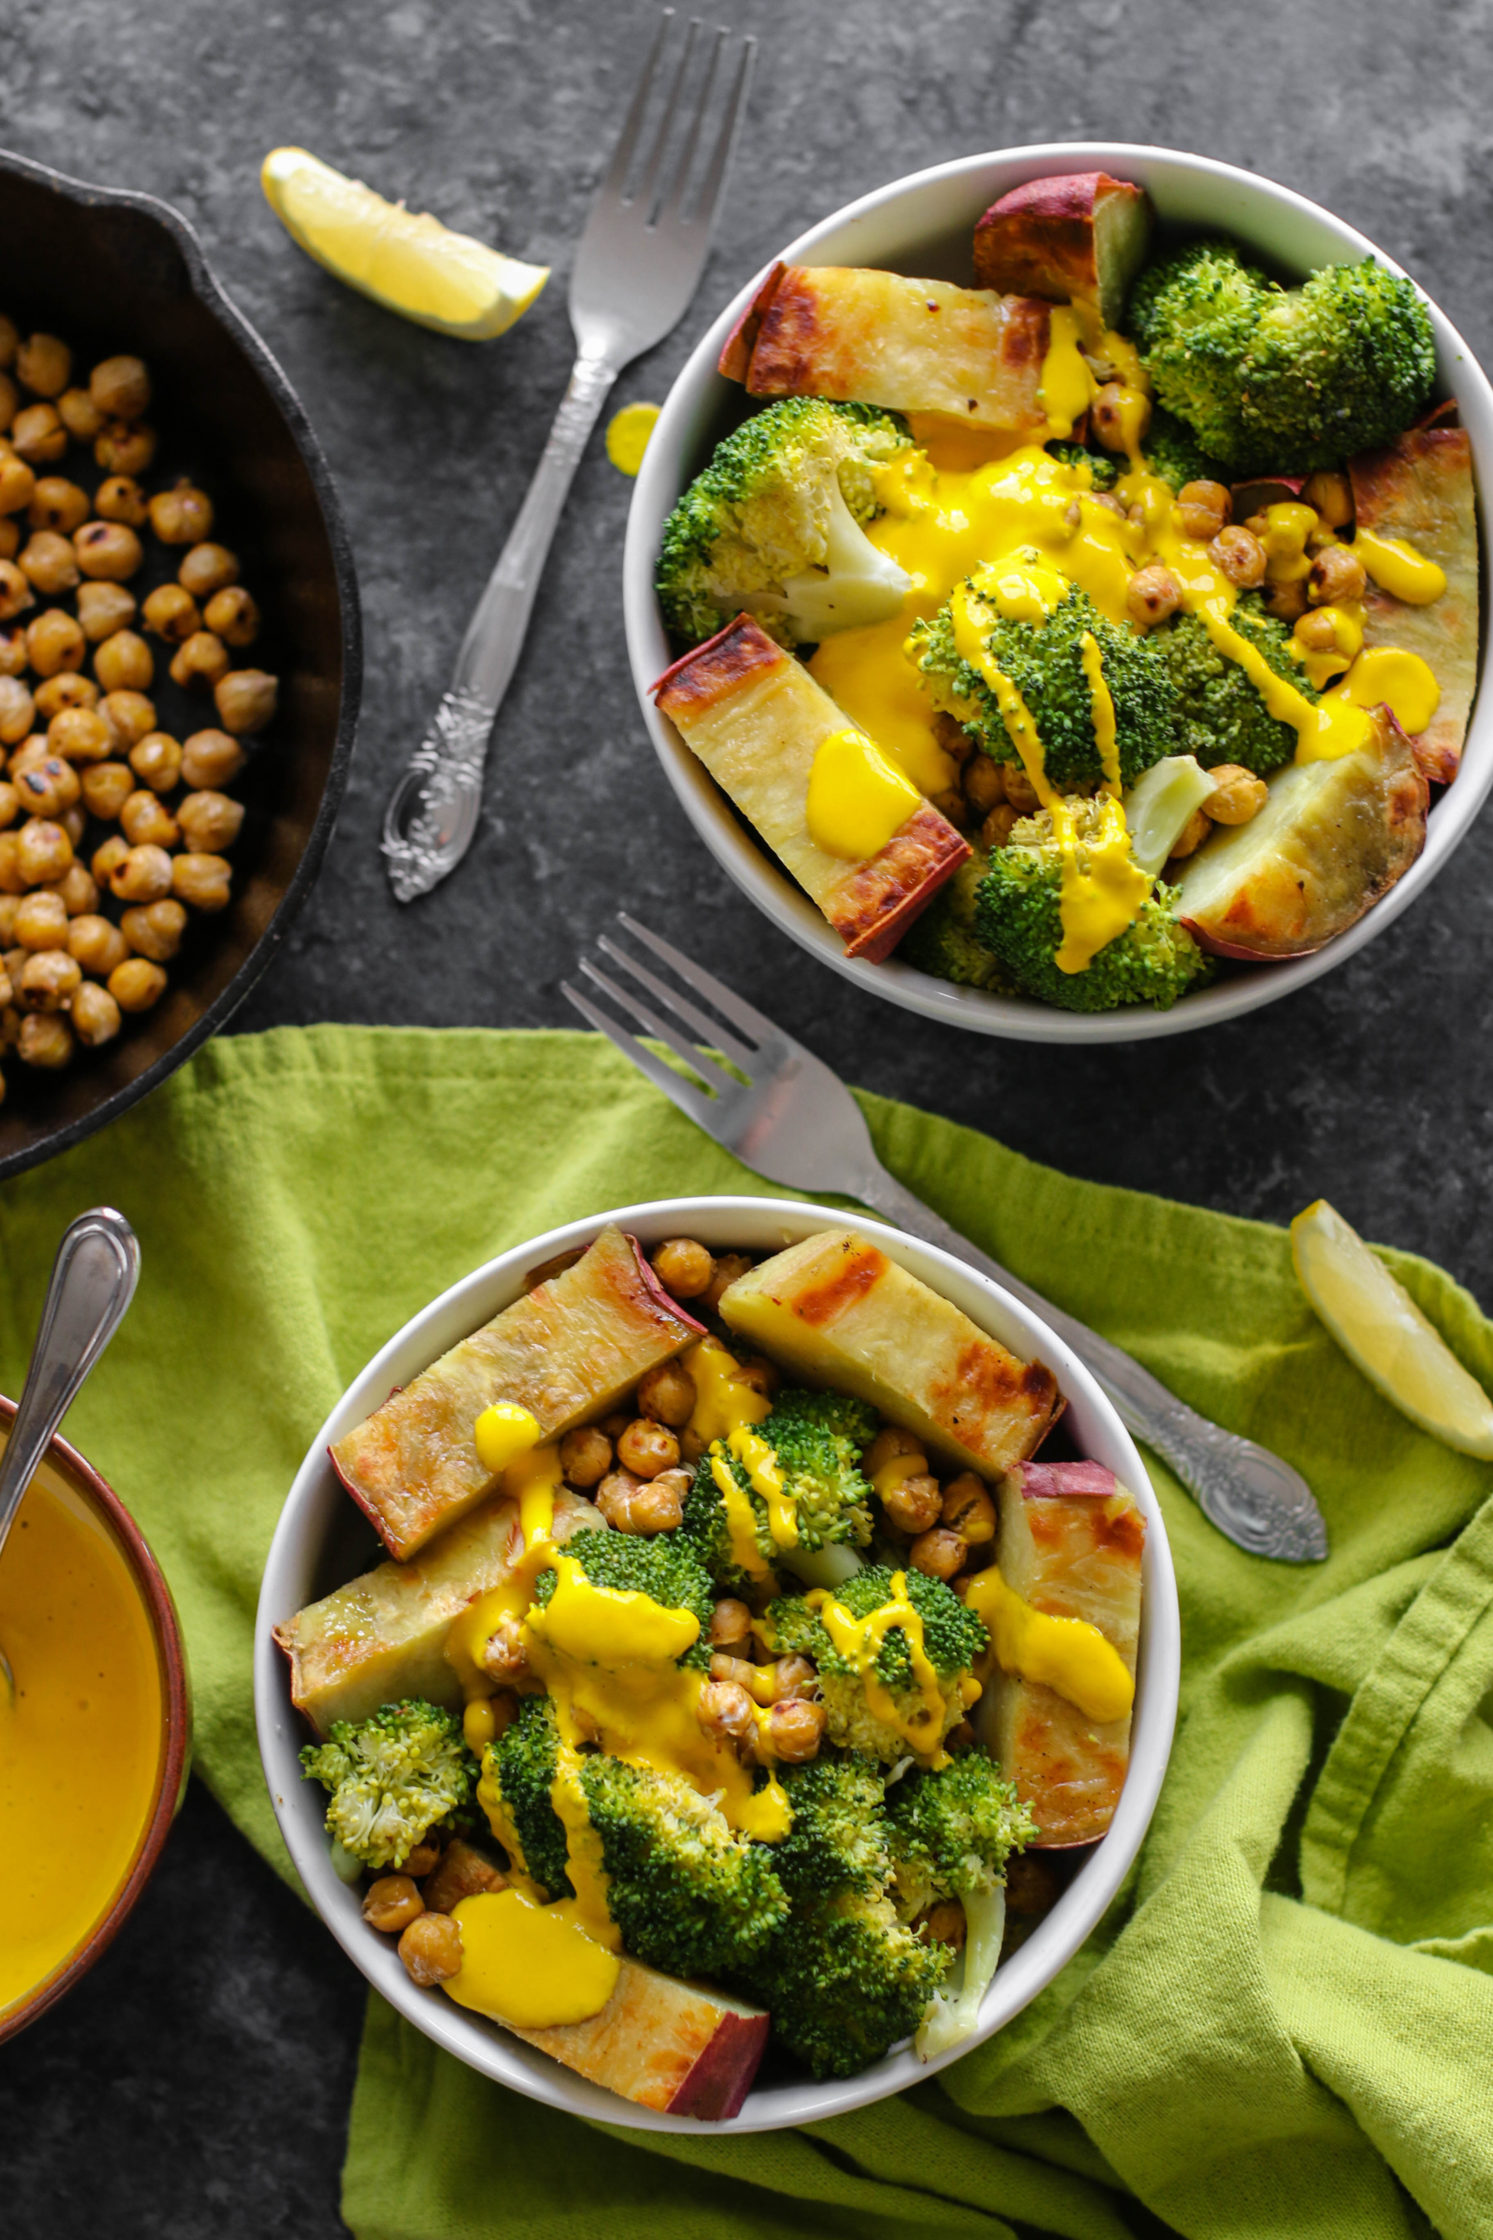 Japanese Yam Buddha Bowl with Turmeric Carrot Cashew Sauce by Flora & Vino